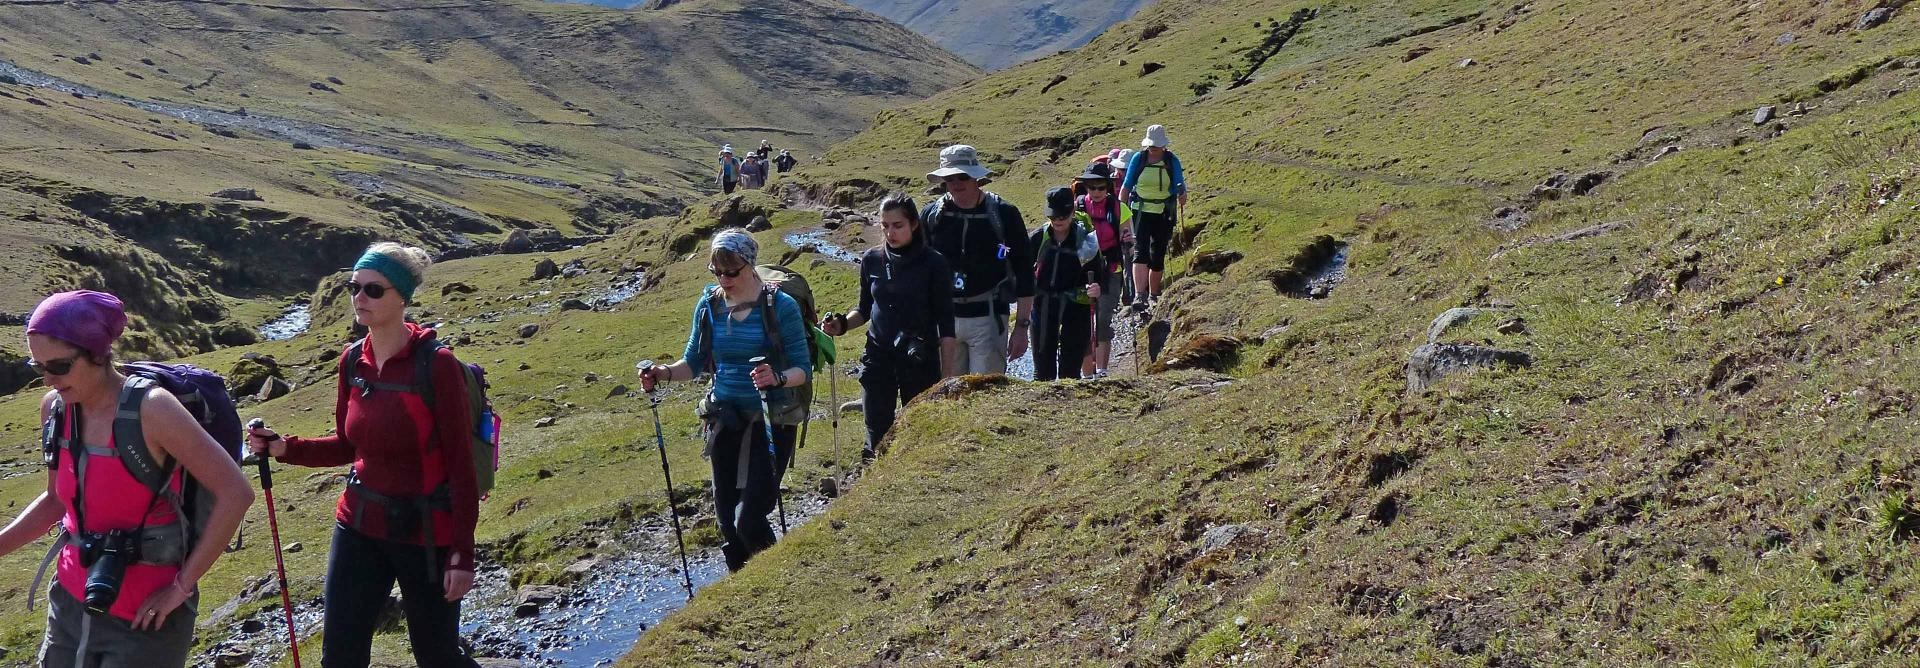 Charit Trek to Machu Picchu in Peru through the Lares Valley